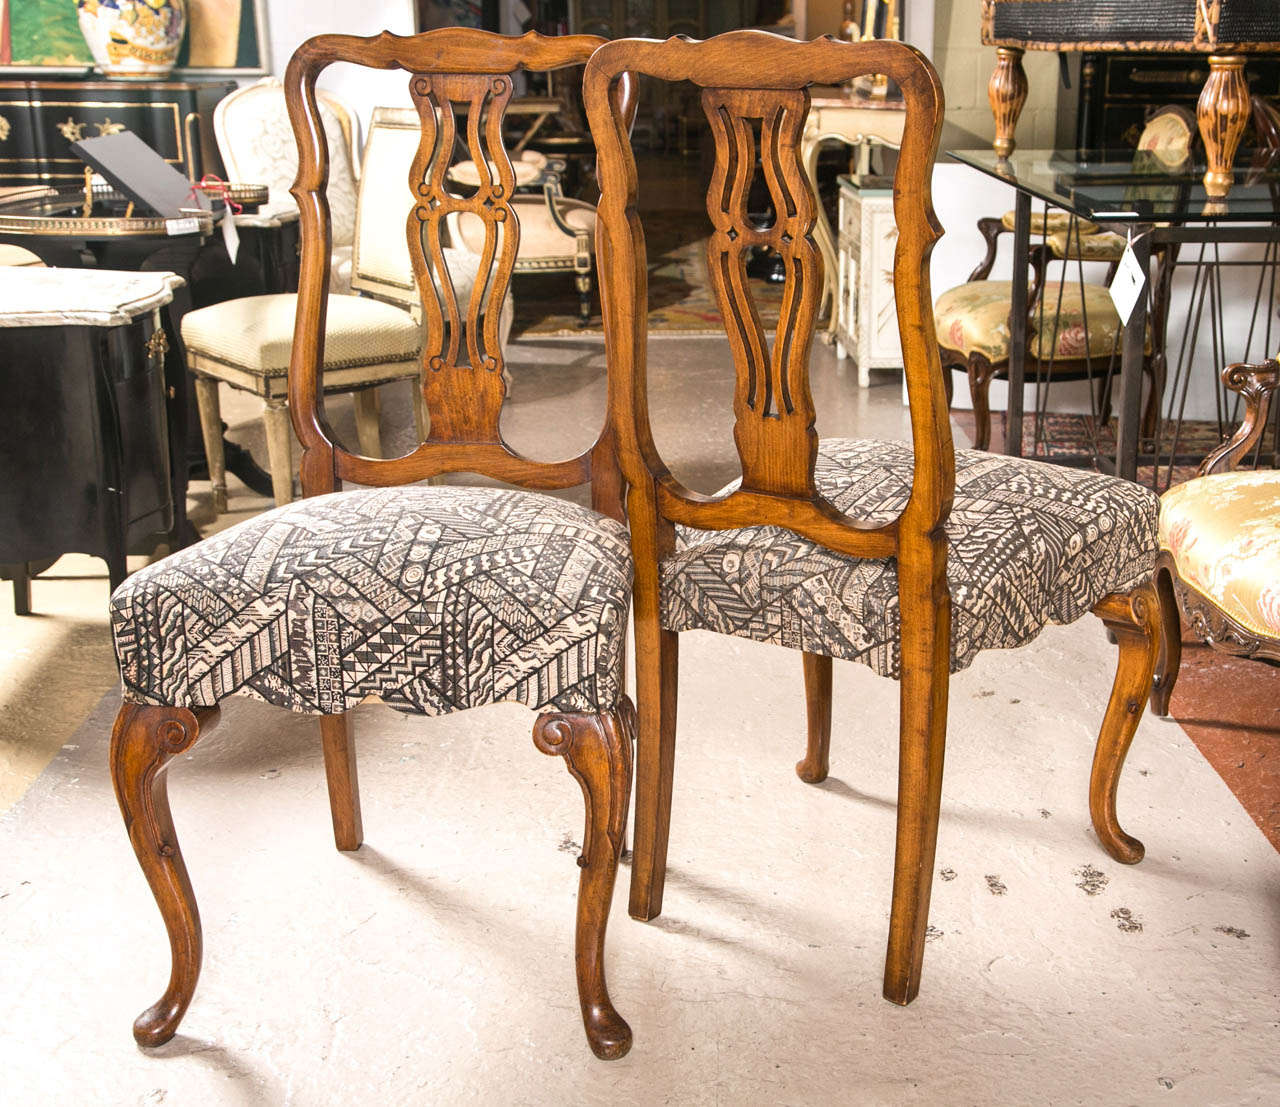 Dining Room Chair Fabric Set Ten Fine Queen Anne Styled Dining Chairs In New Fabric Walnut Cabriole Legs